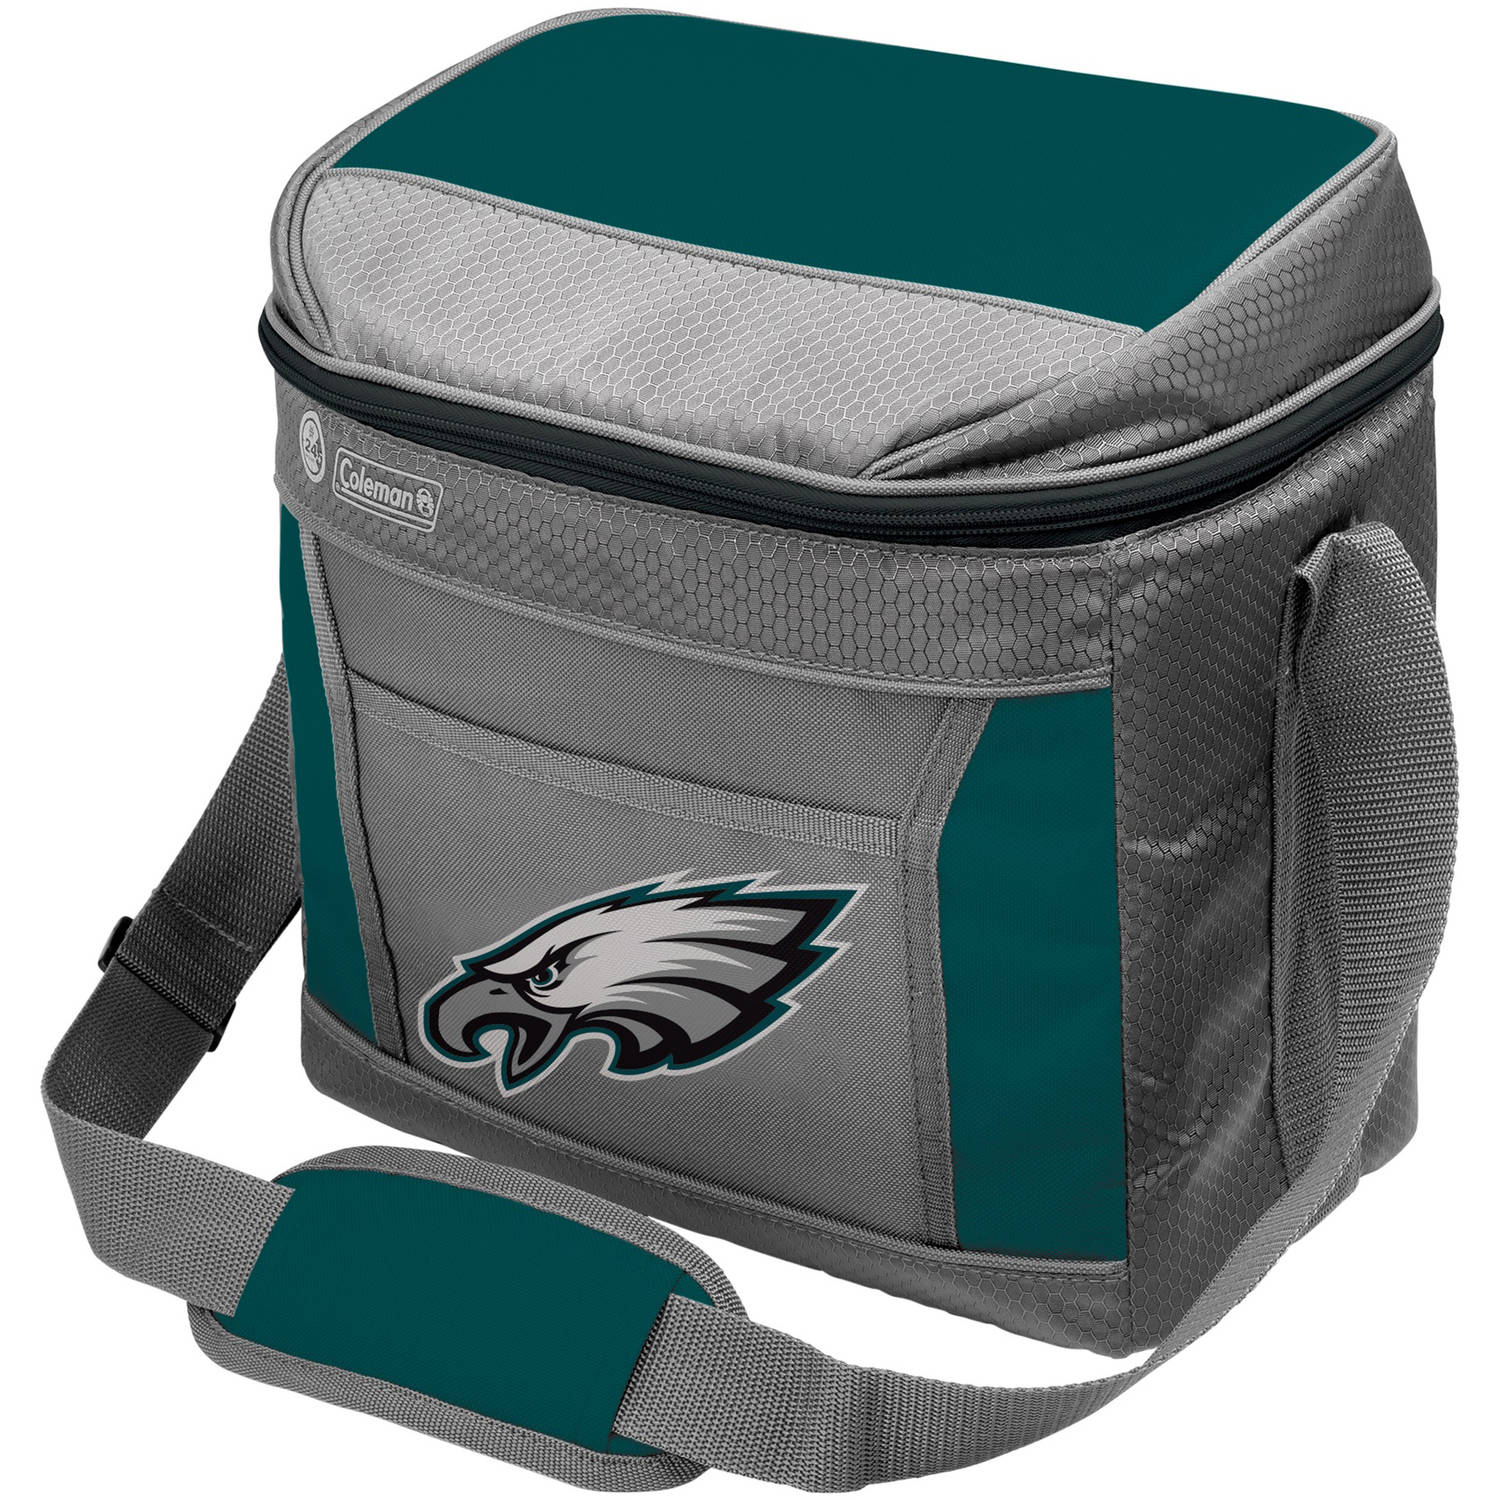 NFL 16-Can Soft-Sided Cooler, Philadelphia